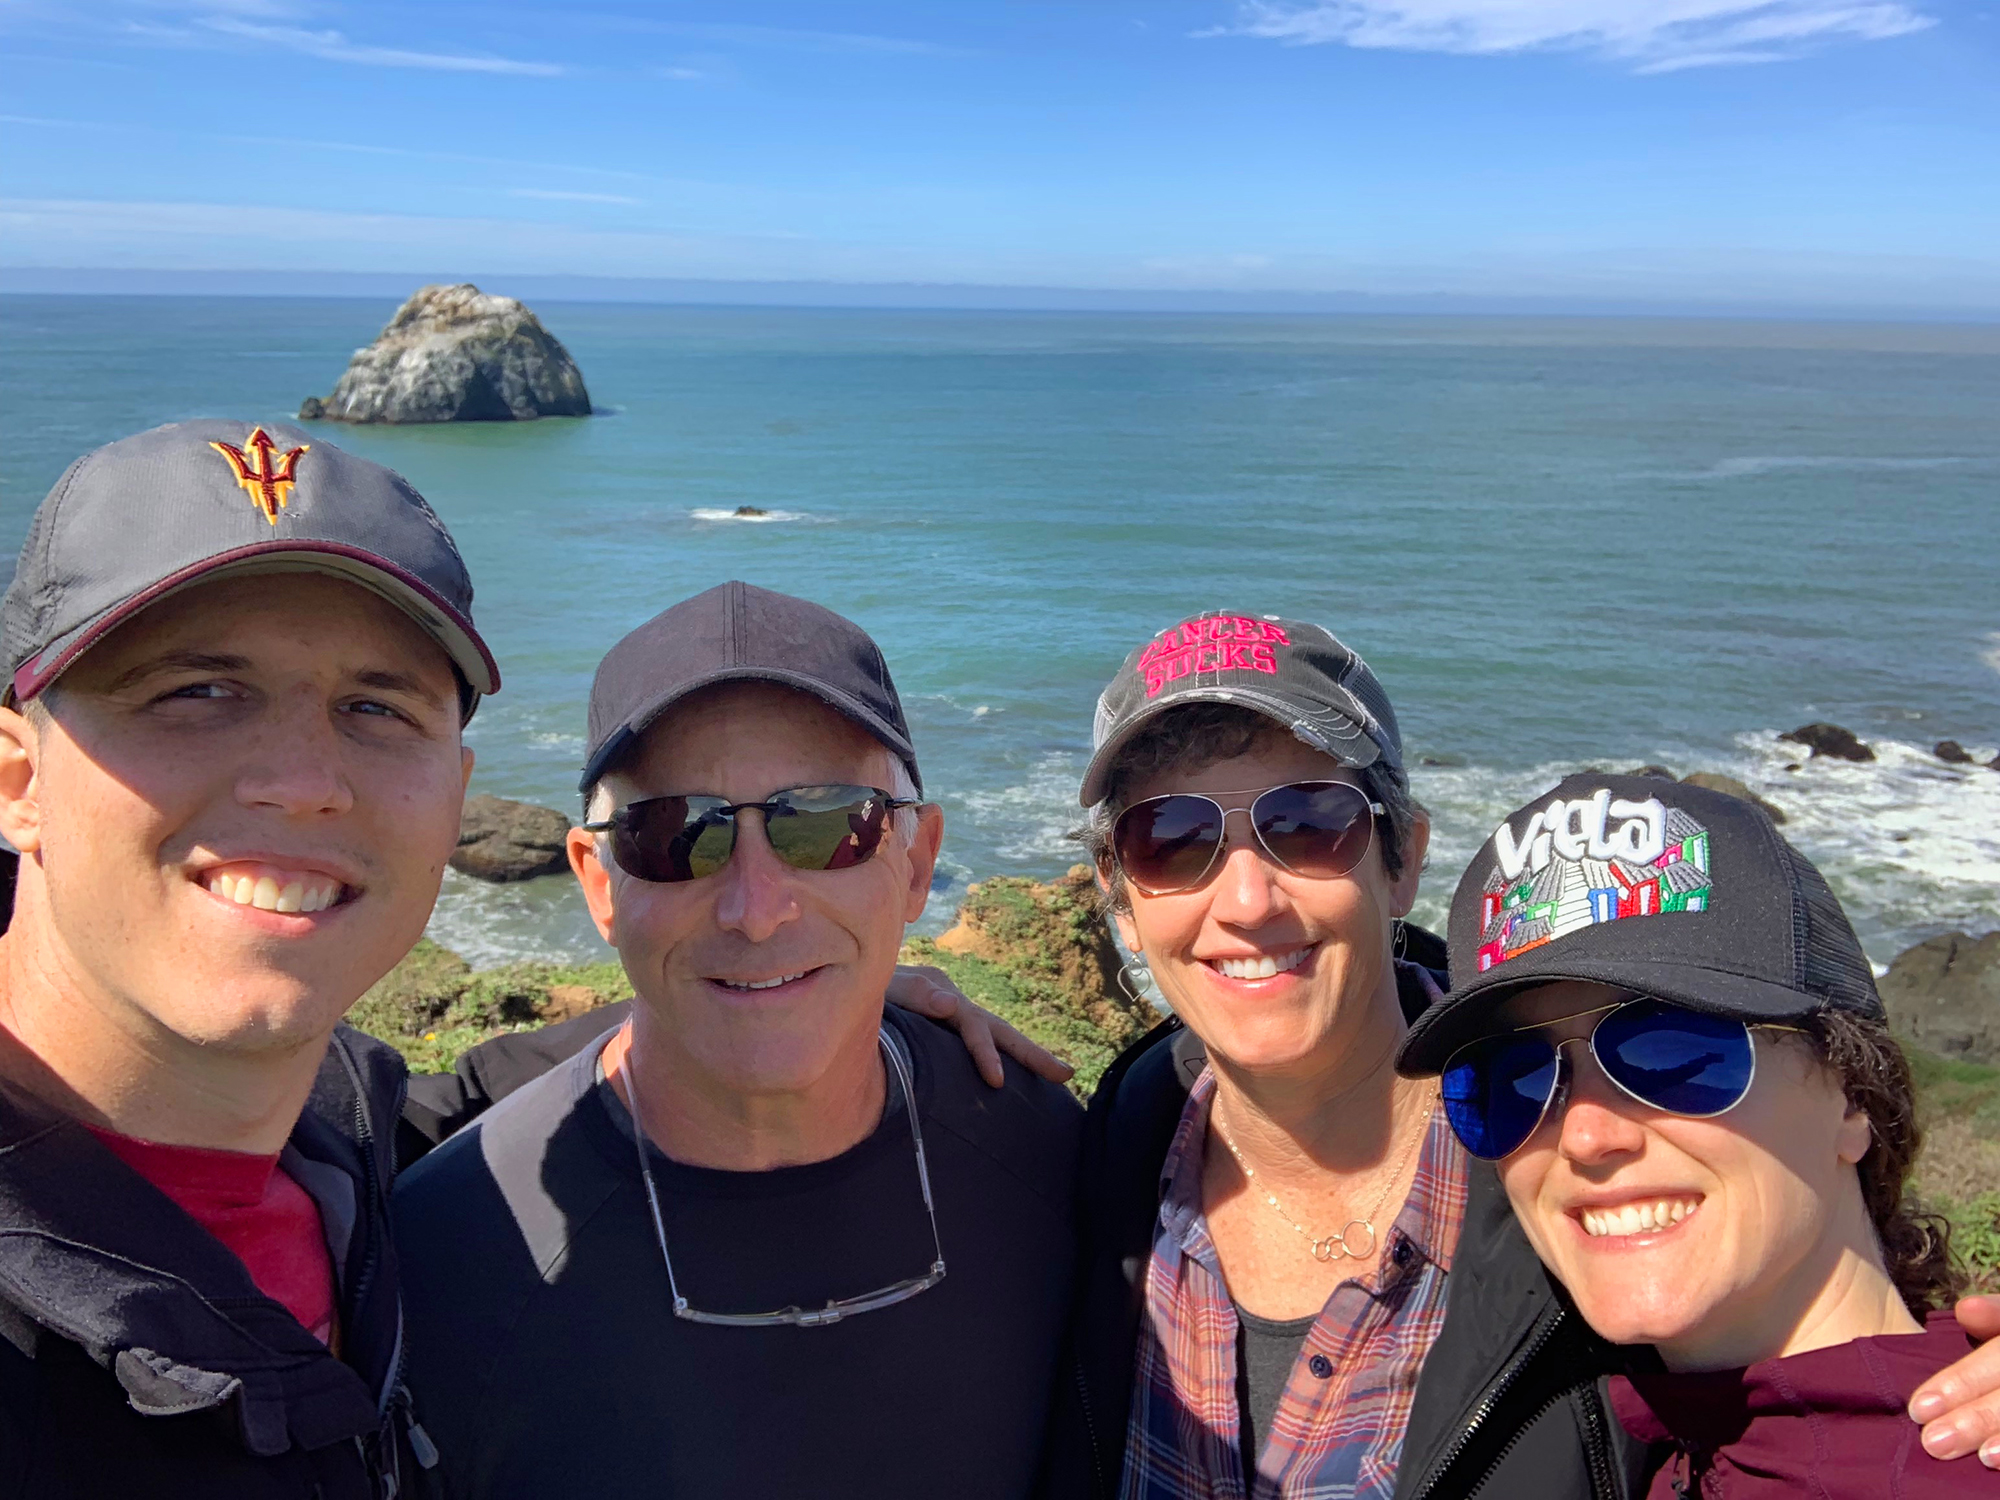 2019-beckers4_bodega-bay_beckers4.jpg